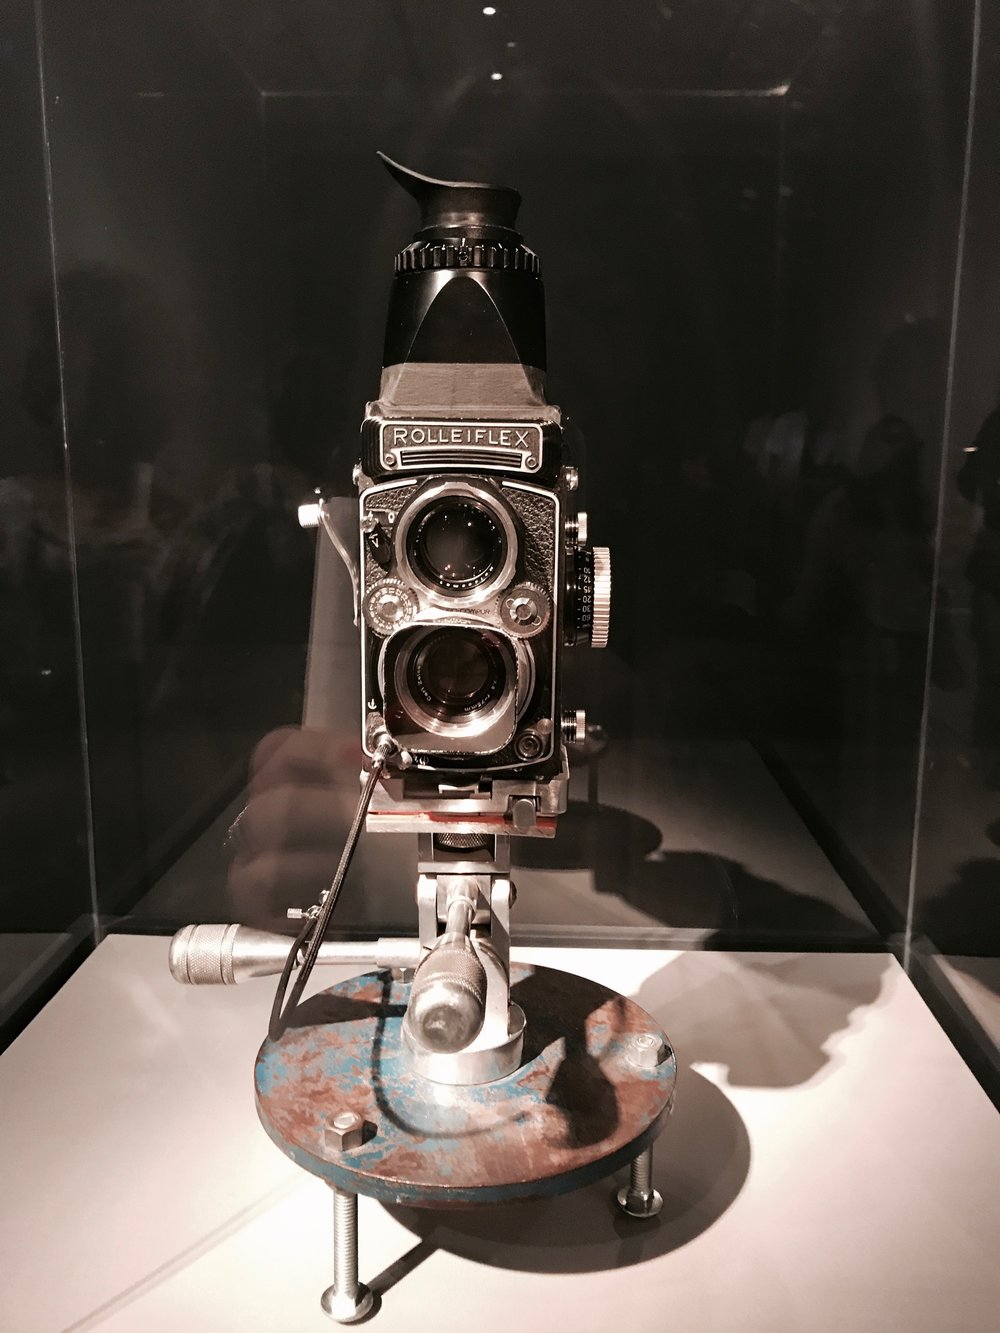 the infamous Rollieflex camera. What a work of art this fine machine is. LOVE